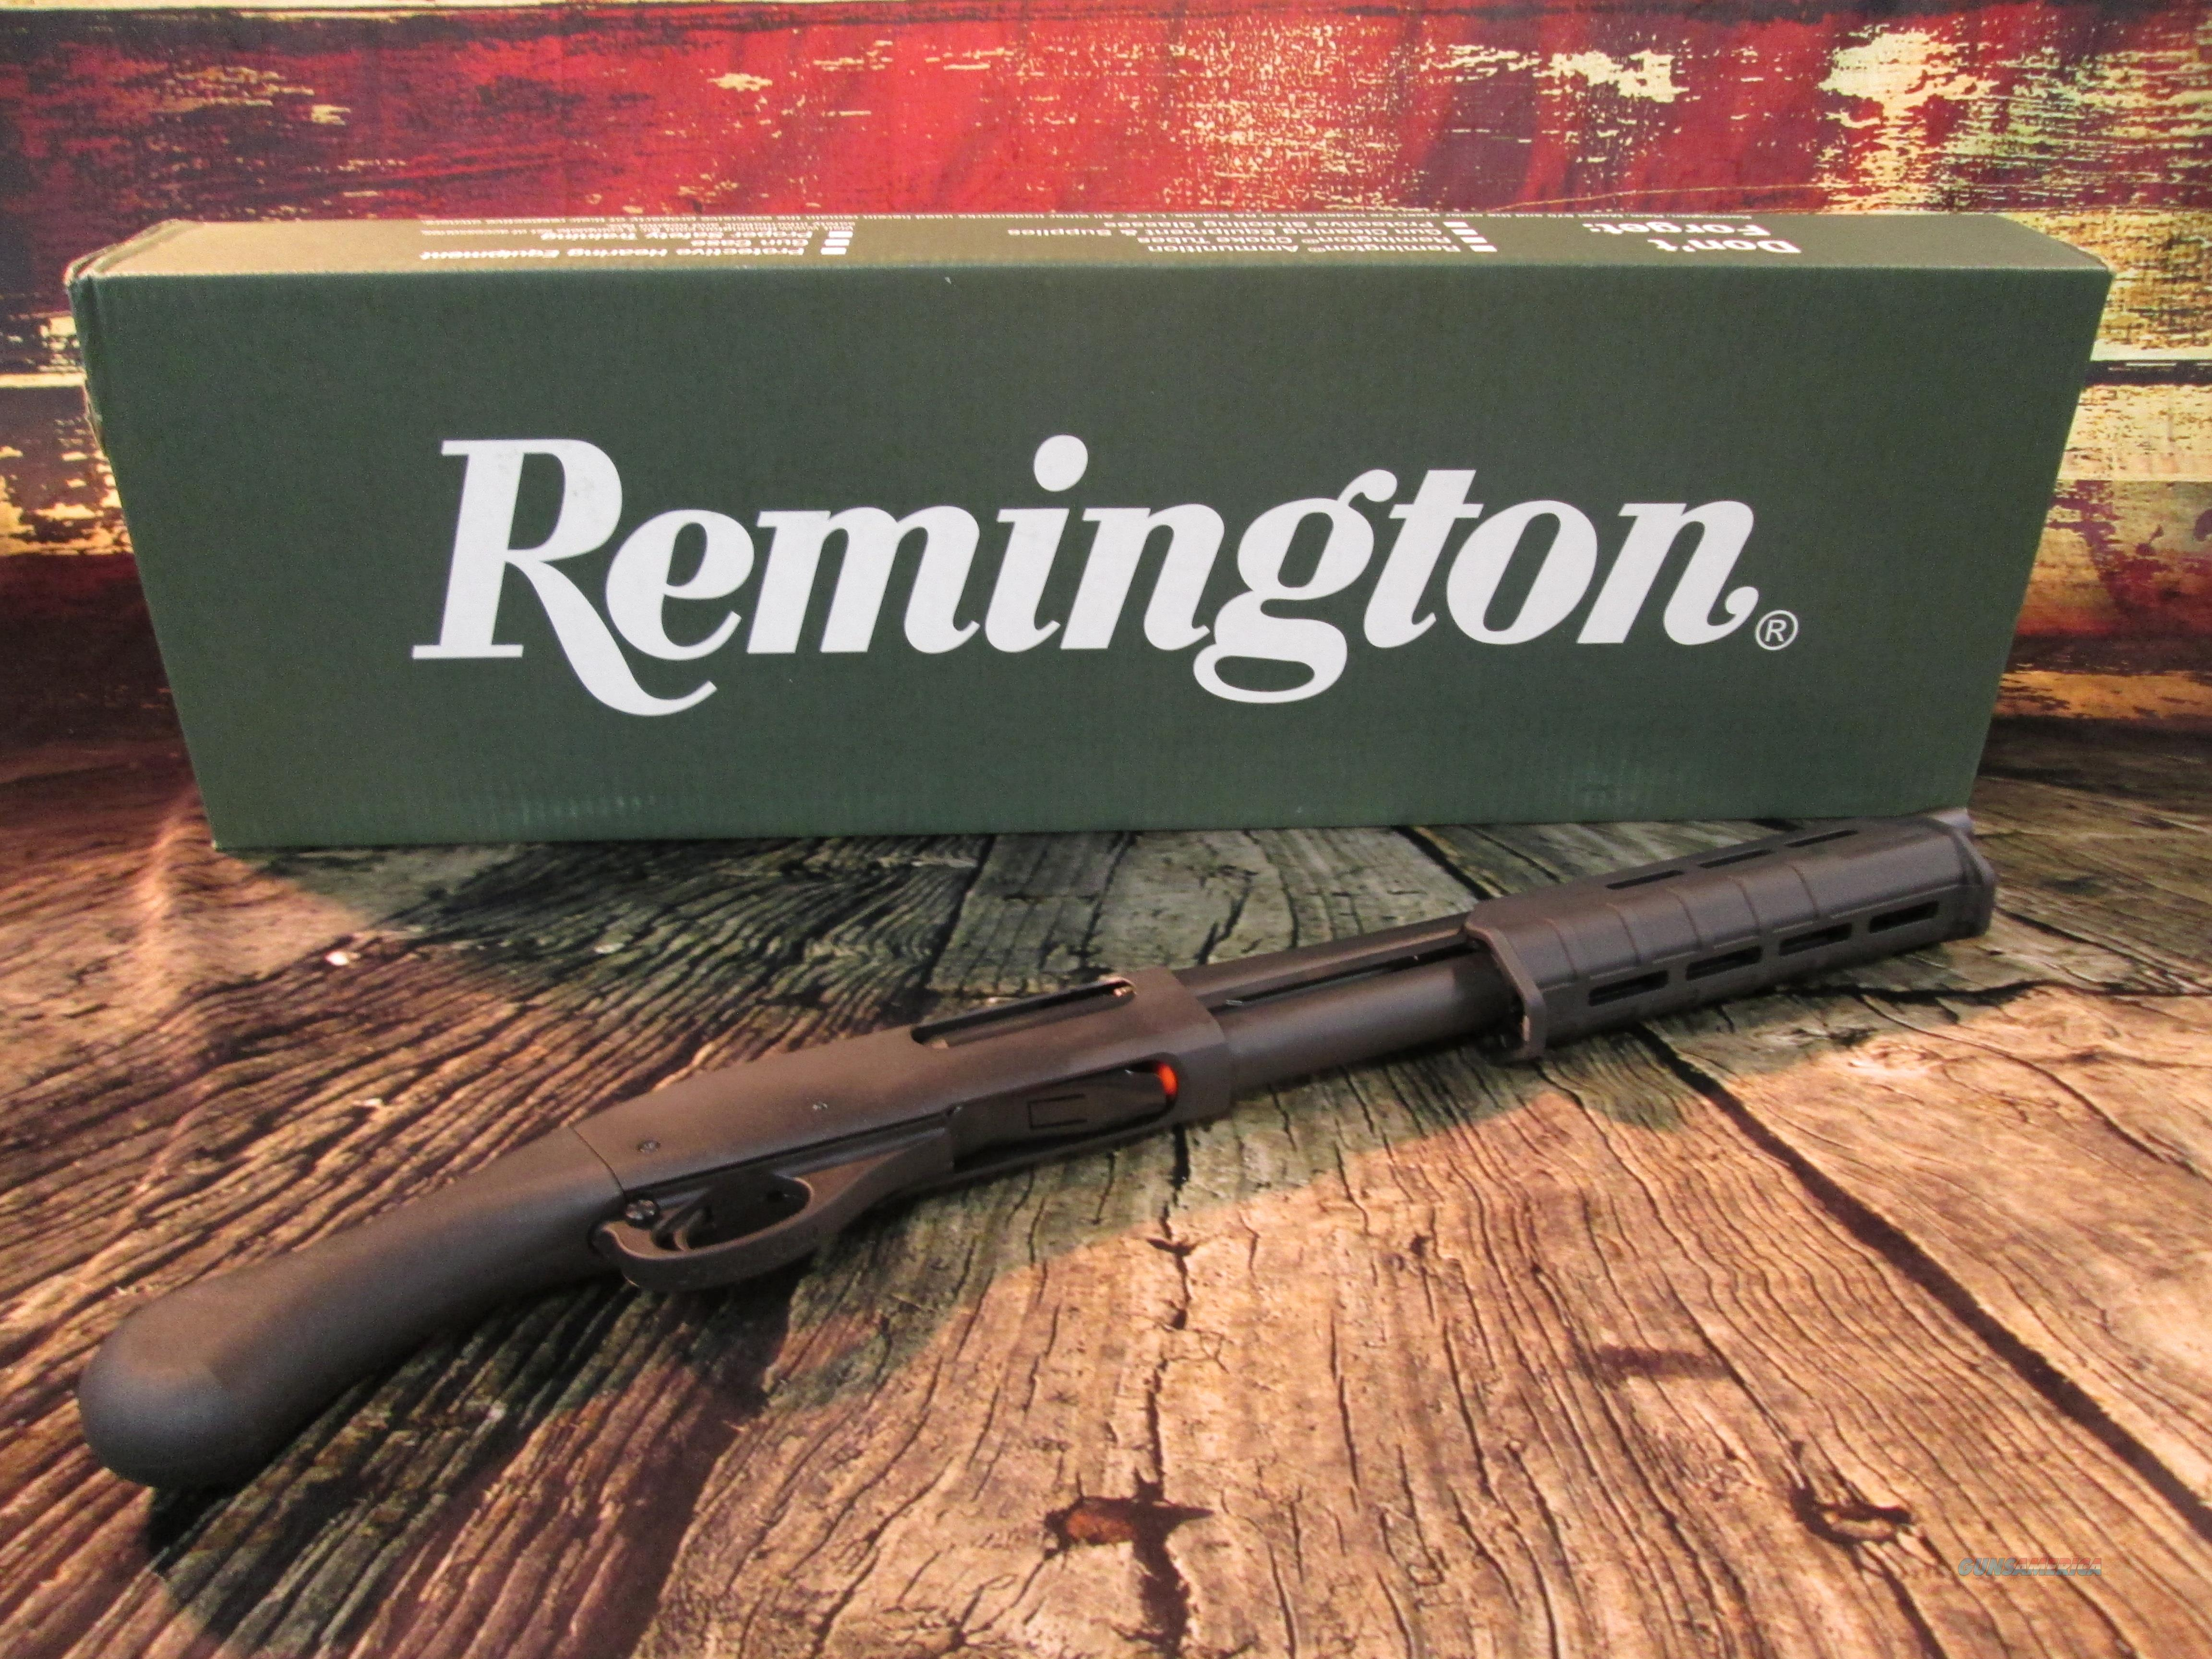 REMINGTON 870 TAC-14 12G SHOTGUN (81230)  ***$50 factory mail in rebate through 10/15/17 ***  Guns > Shotguns > Remington Shotguns  > Pump > Tactical